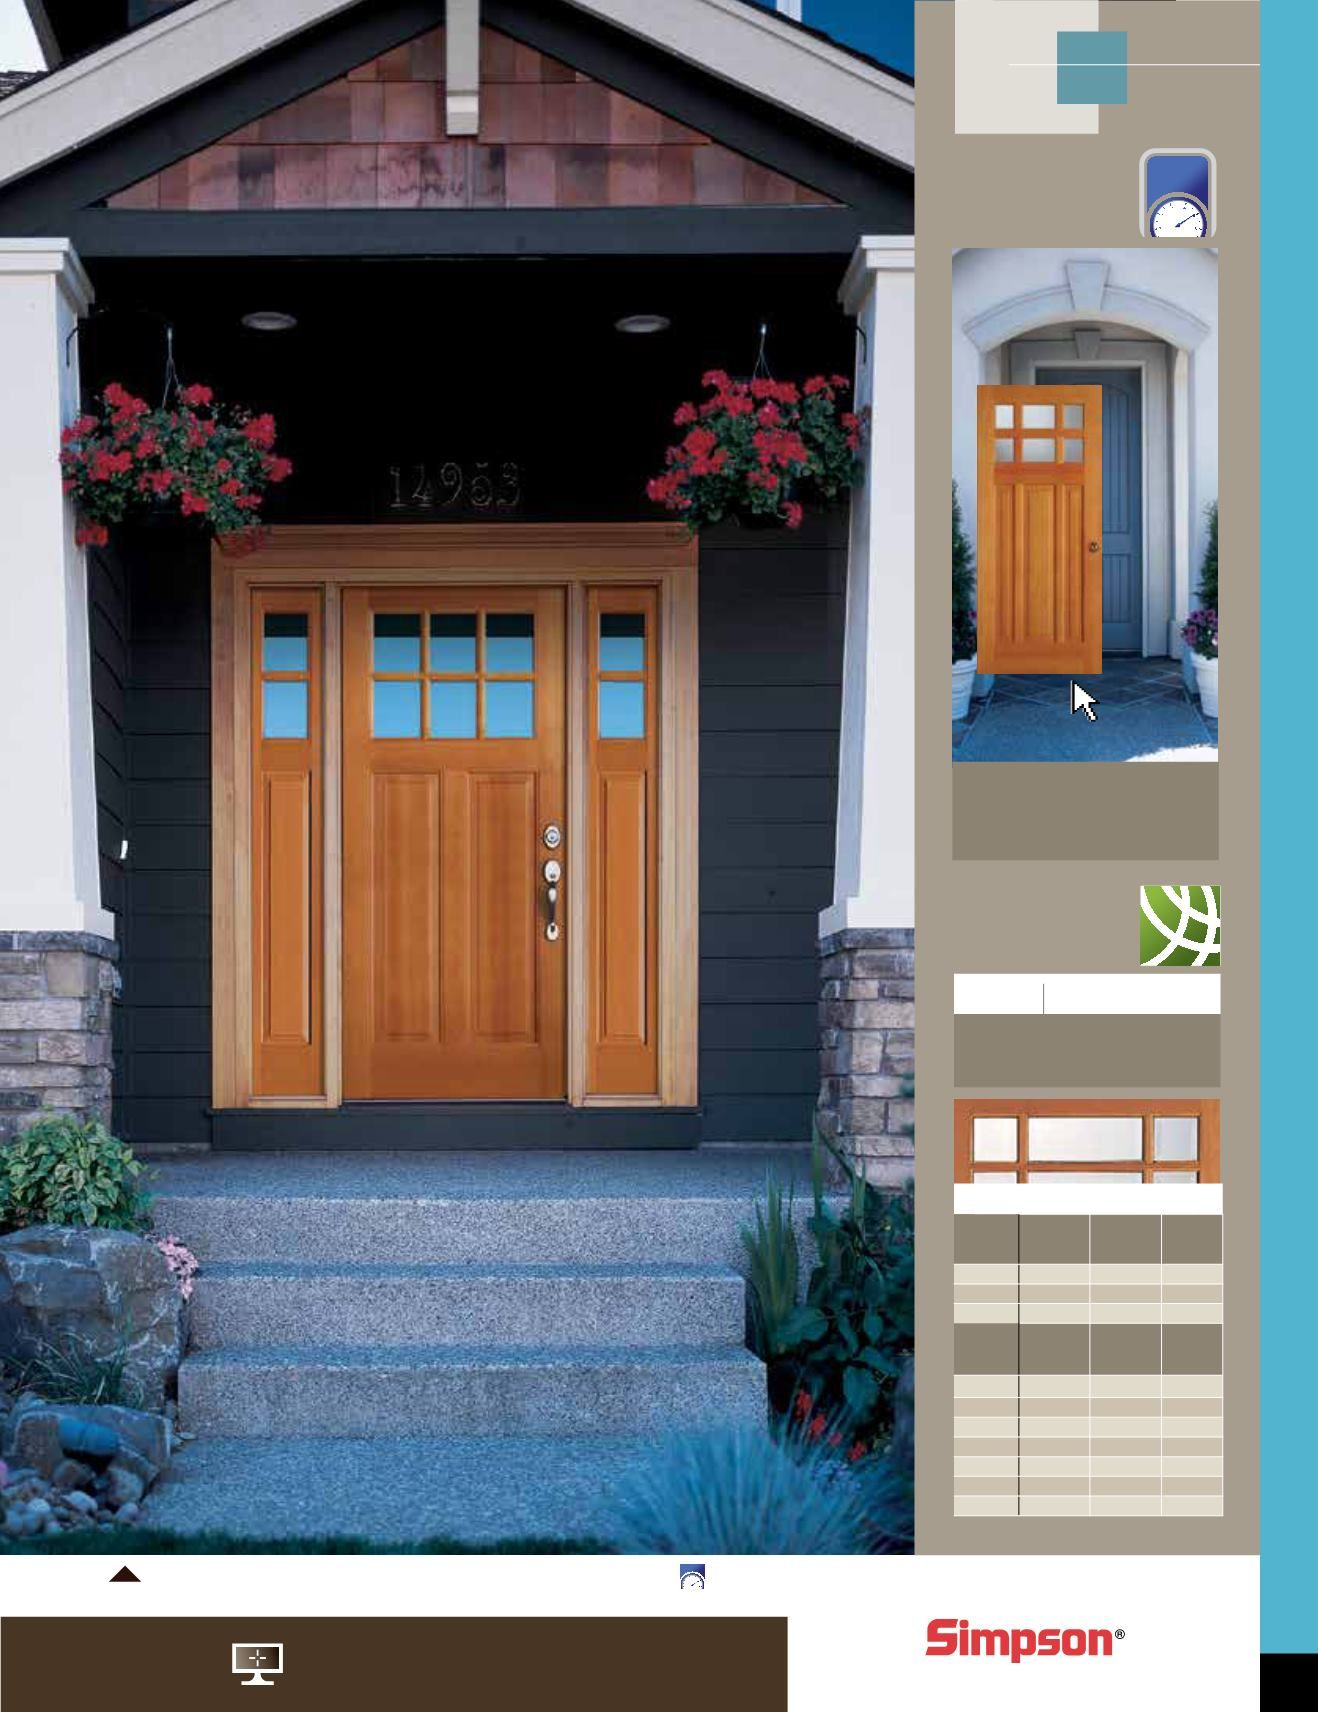 Awesome wood brown panel simpson door design collections with